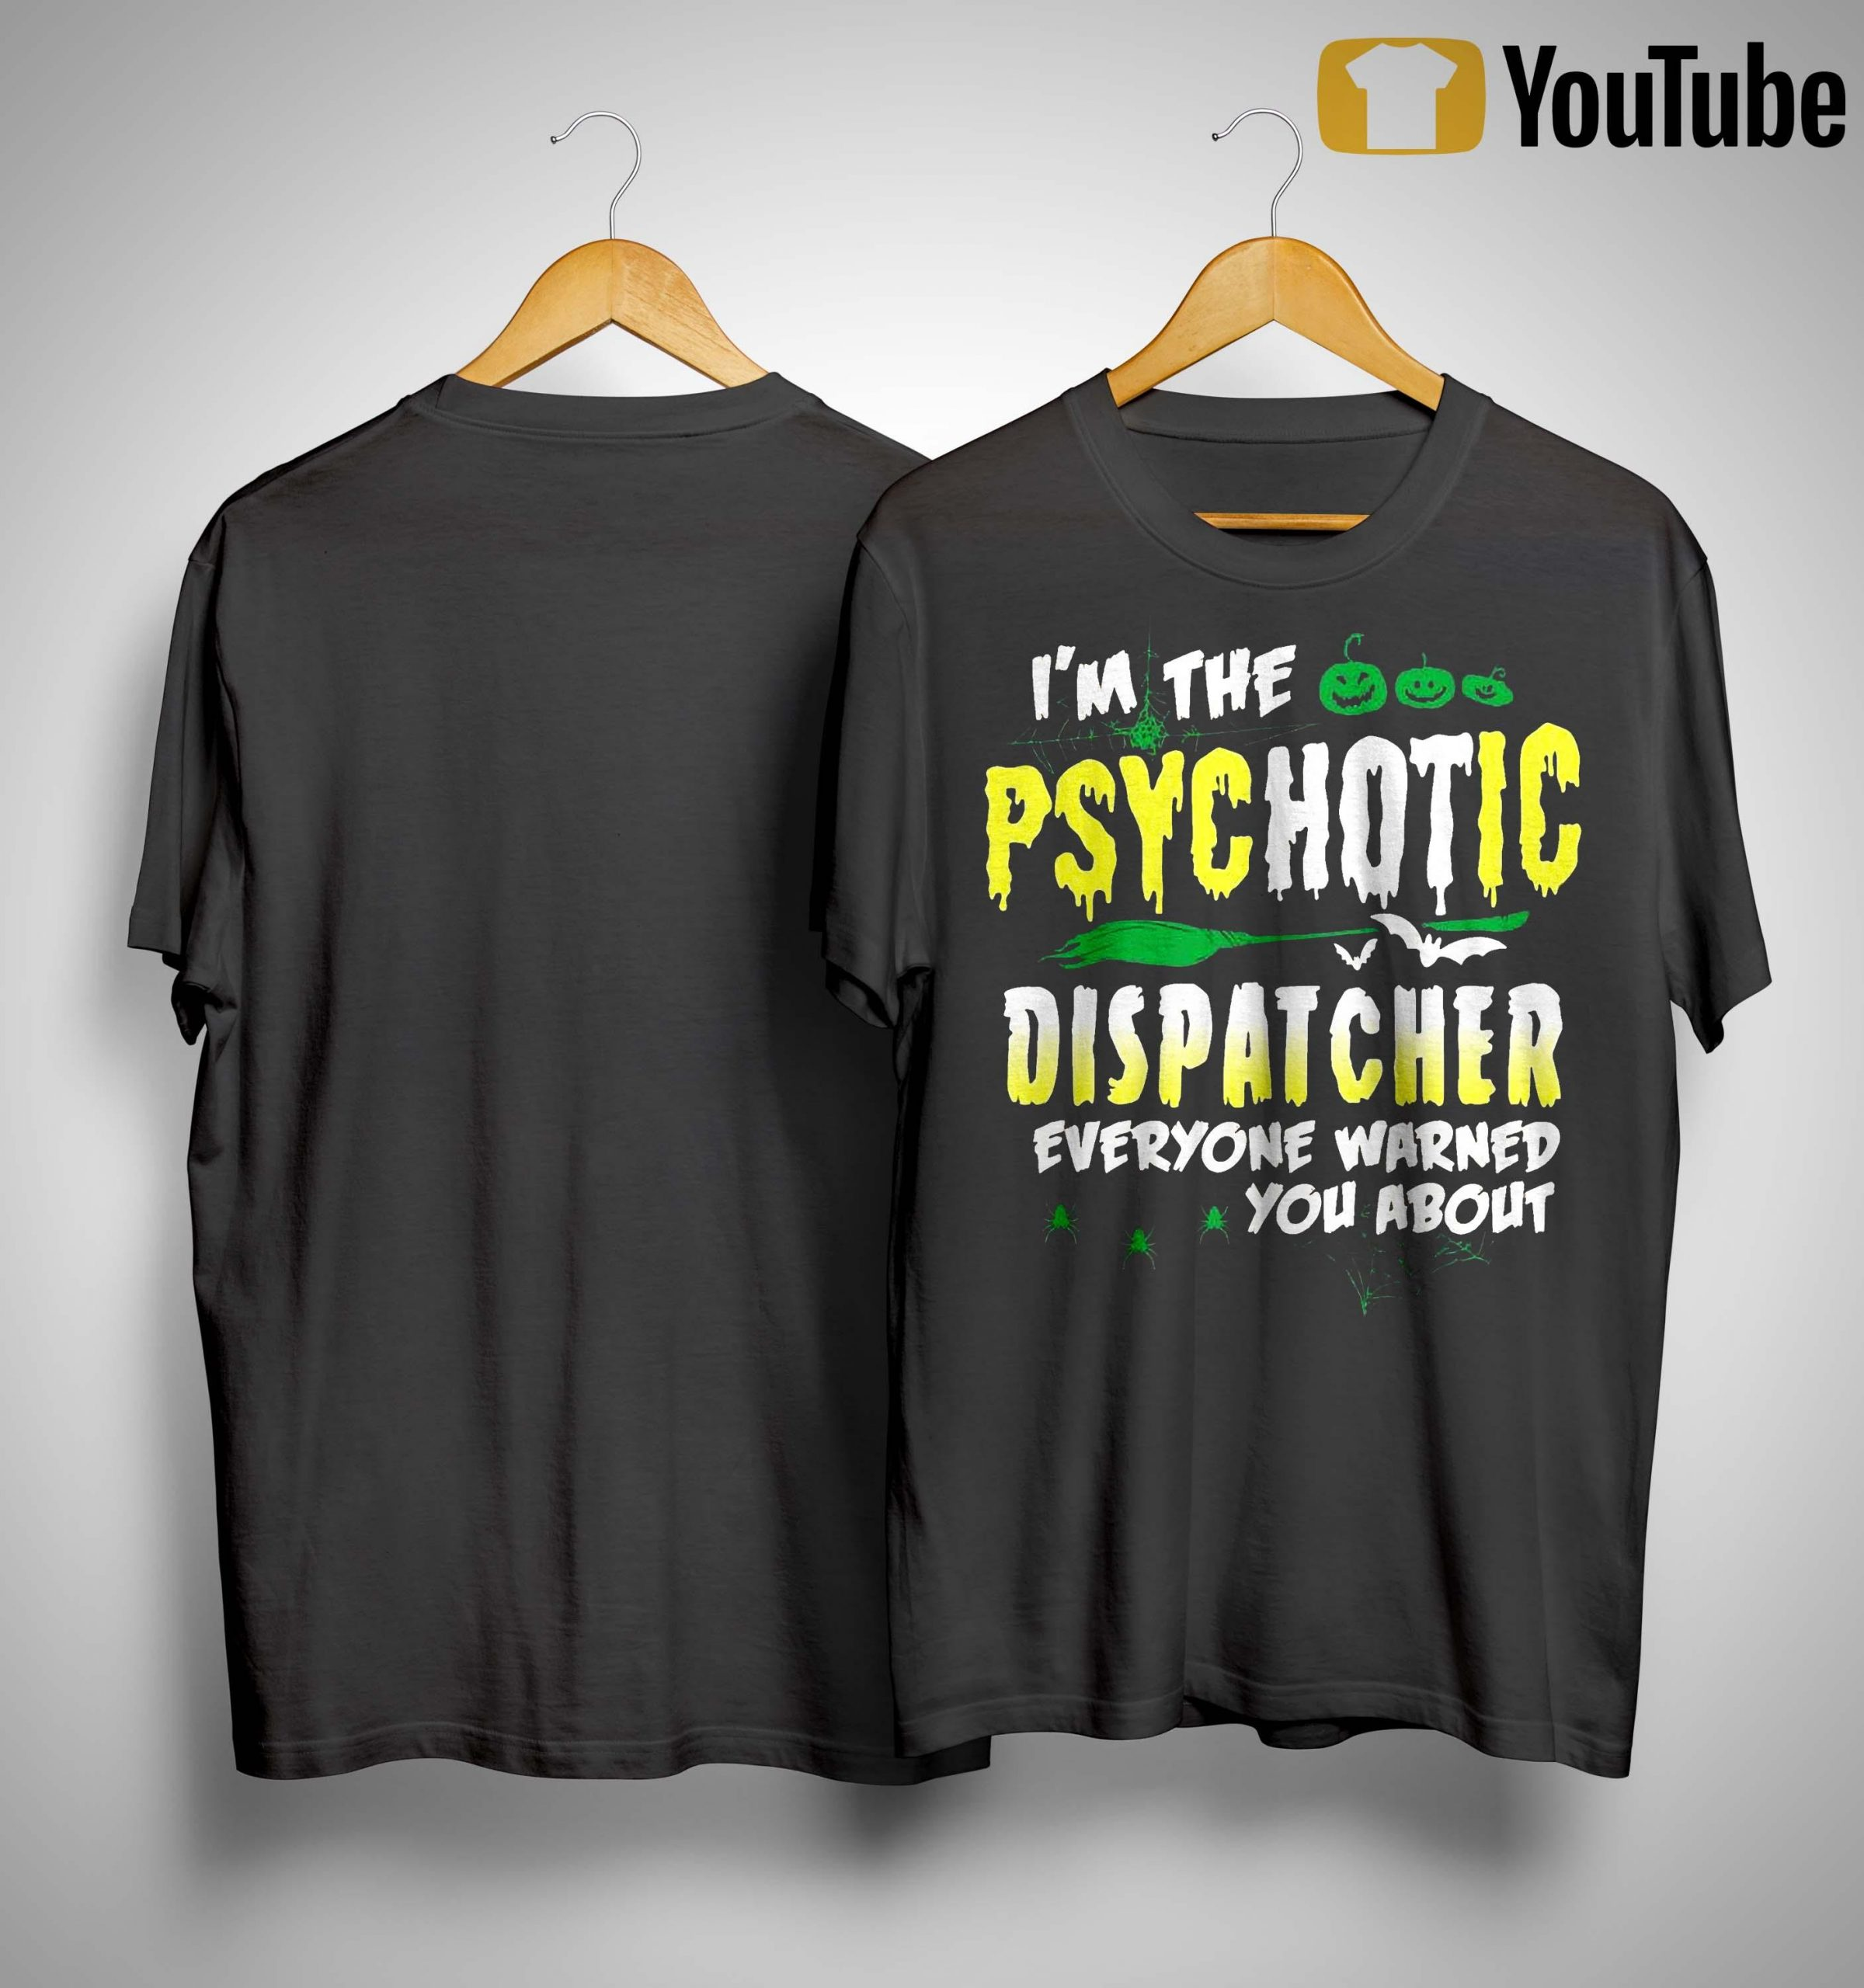 I'm The Psychotic Dispatcher Everyone Warned You About Shirt